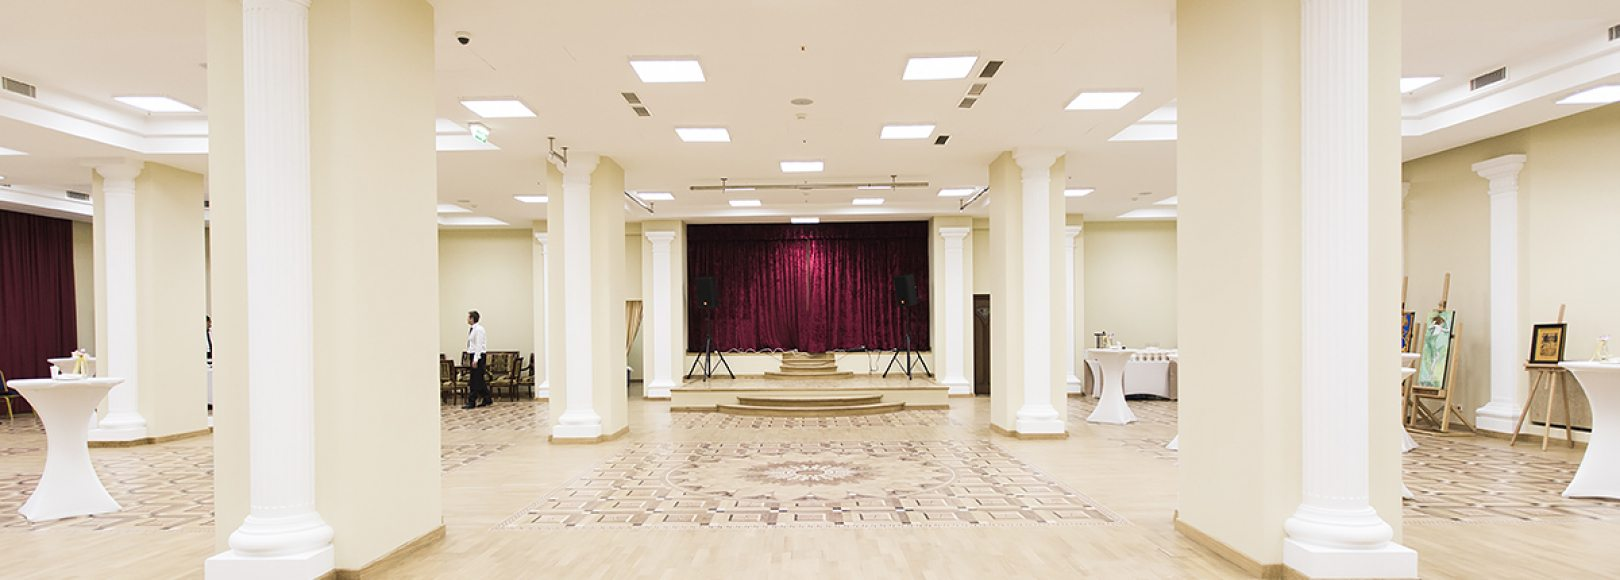 Фотографии конференц-зала Арт Плаза Холл / Art Plaza Hall